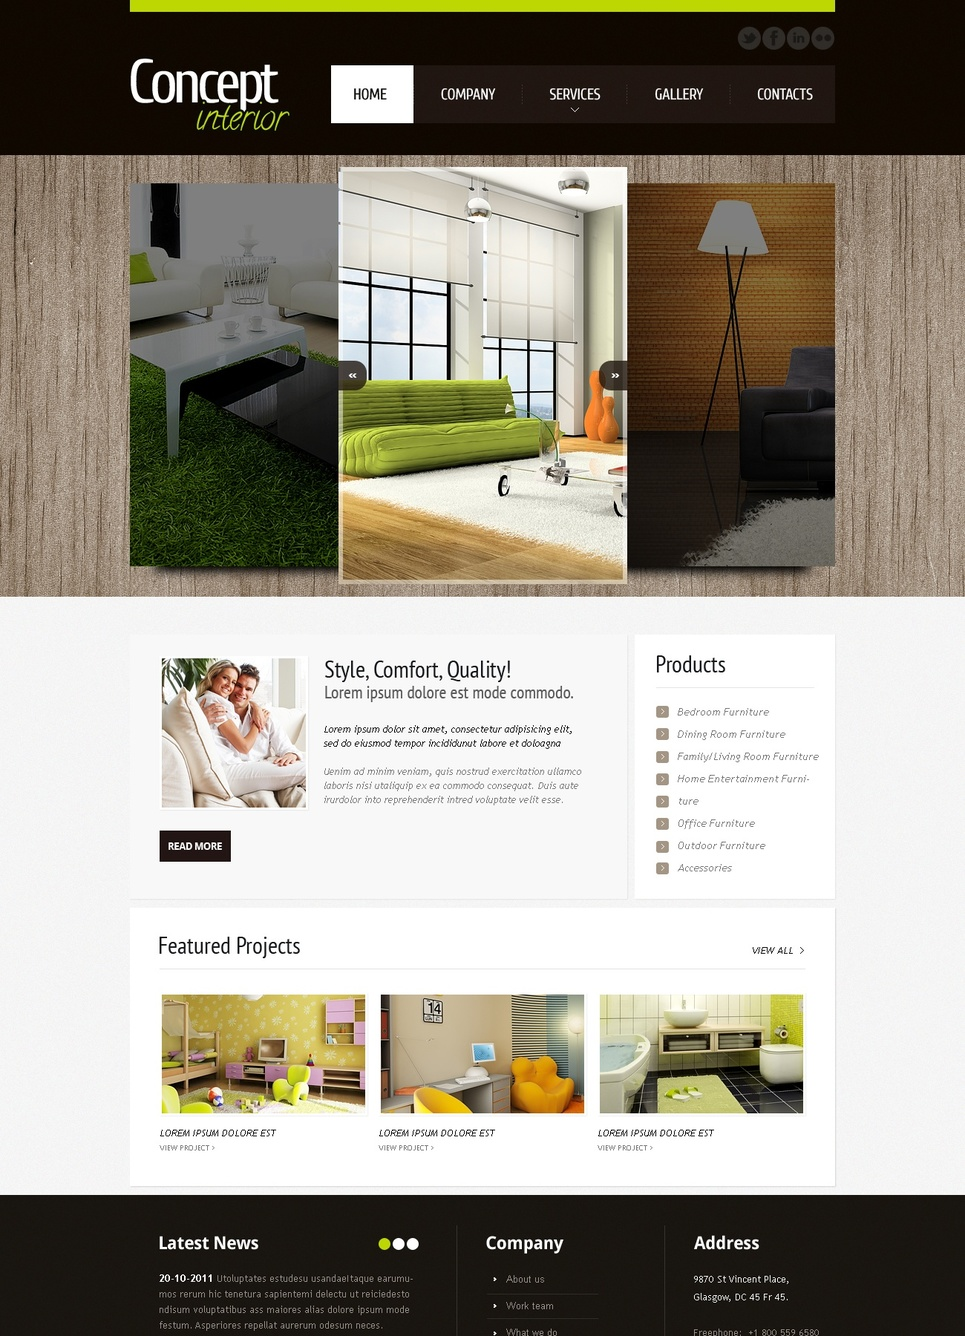 Interior Design Website Template with a Carousel Photo Gallery - image